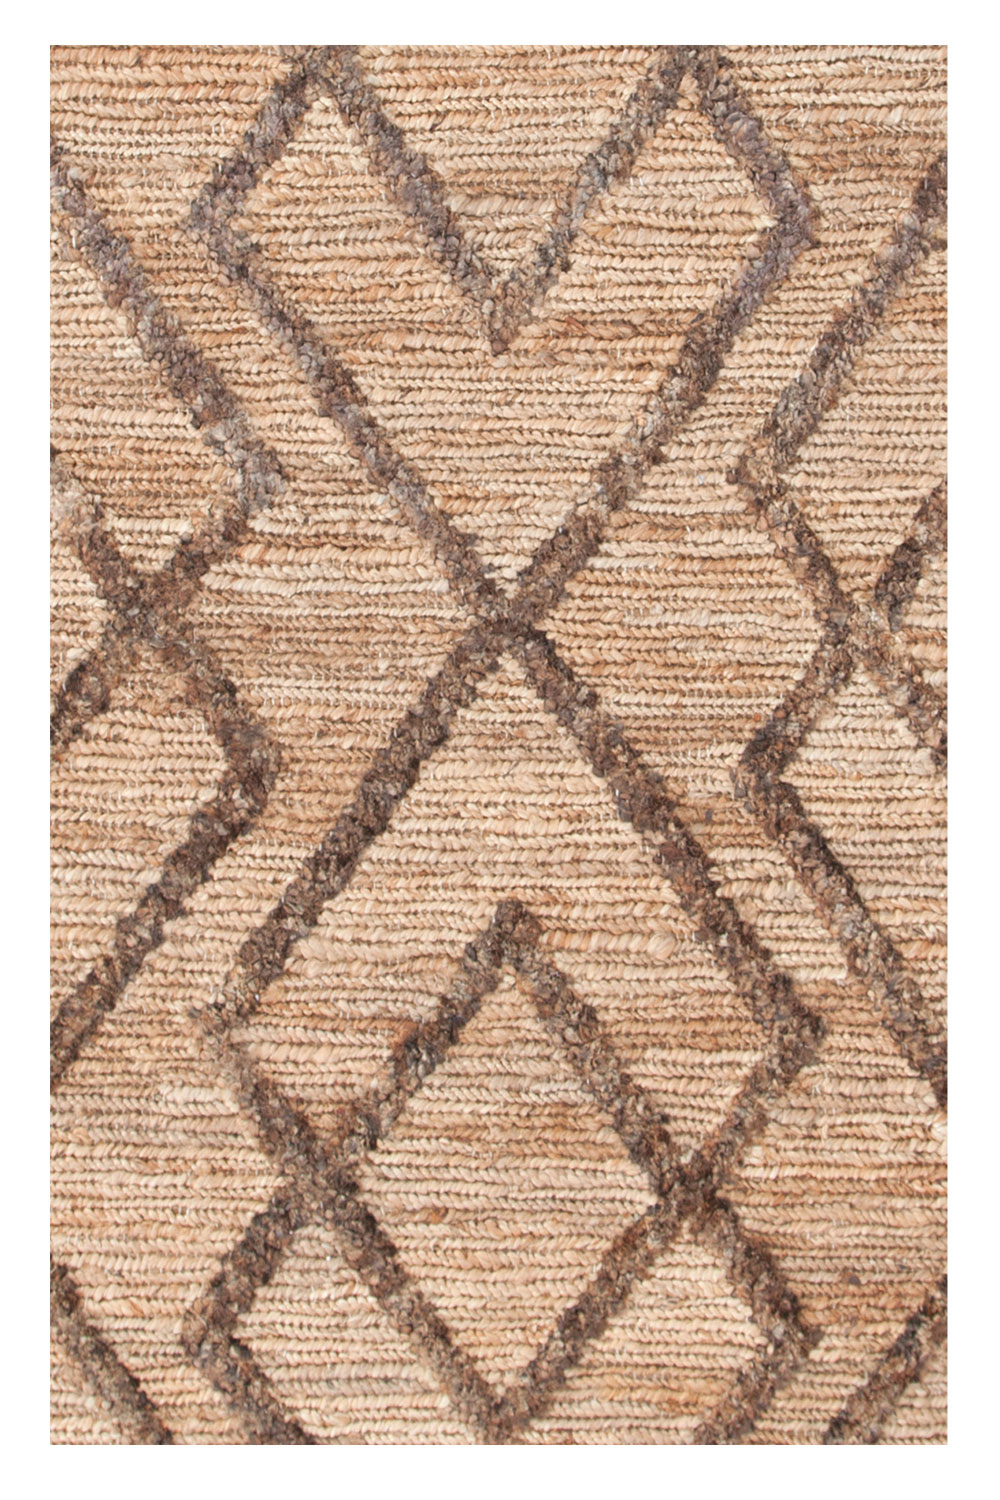 Bunny Williams for Dash + Albert soumak weave rug, $1,650 (for  8- x 10-foot size) at GDC Home